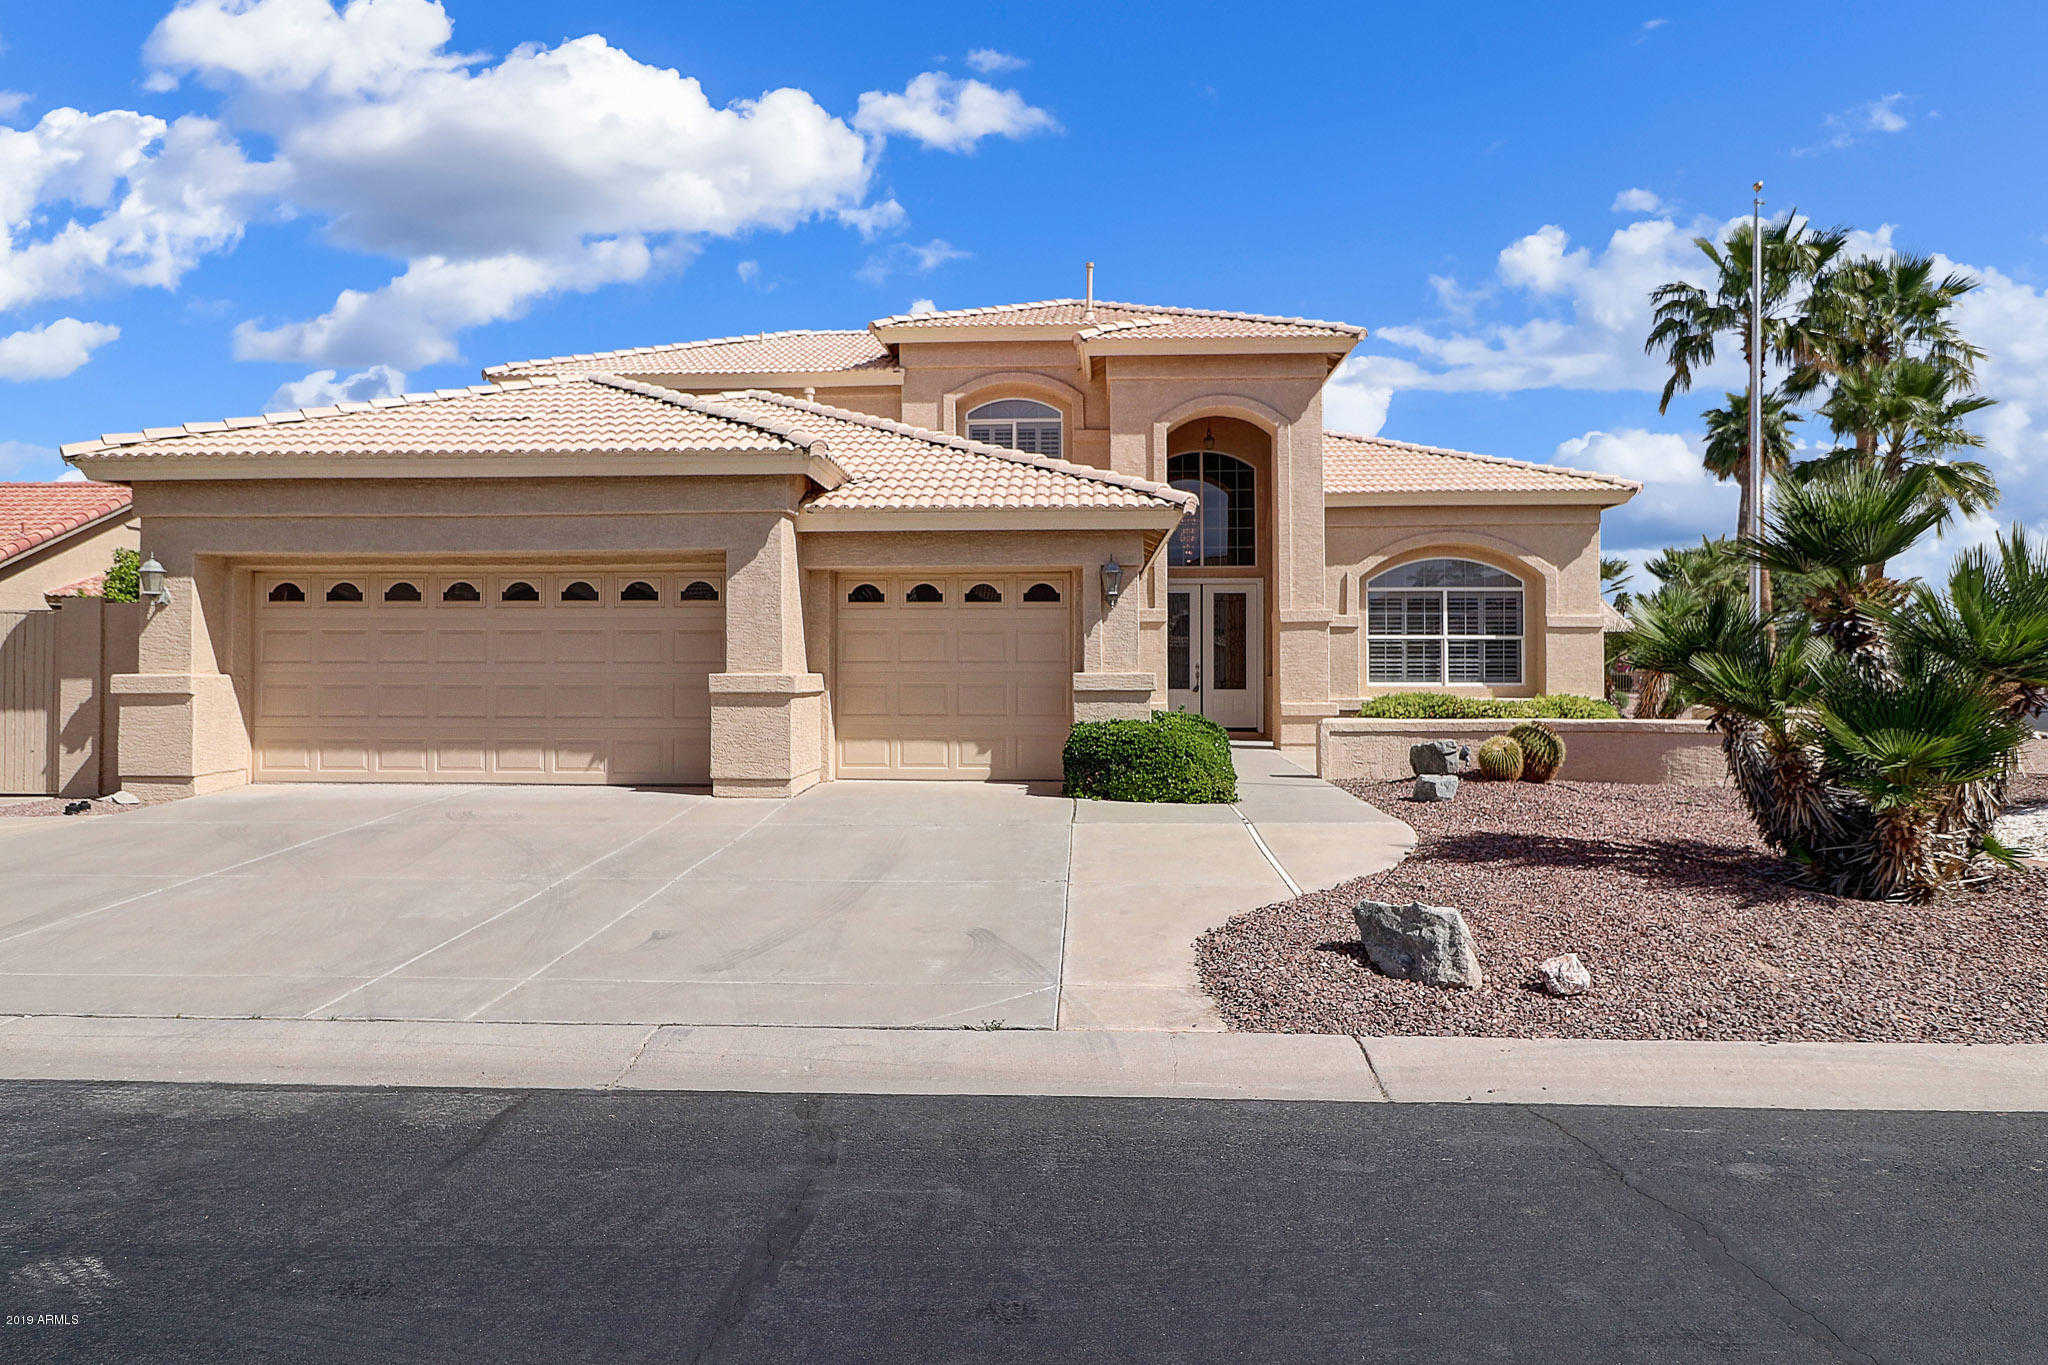 Sun Lakes Phase 1 Golf Homes For Sale Active Adult